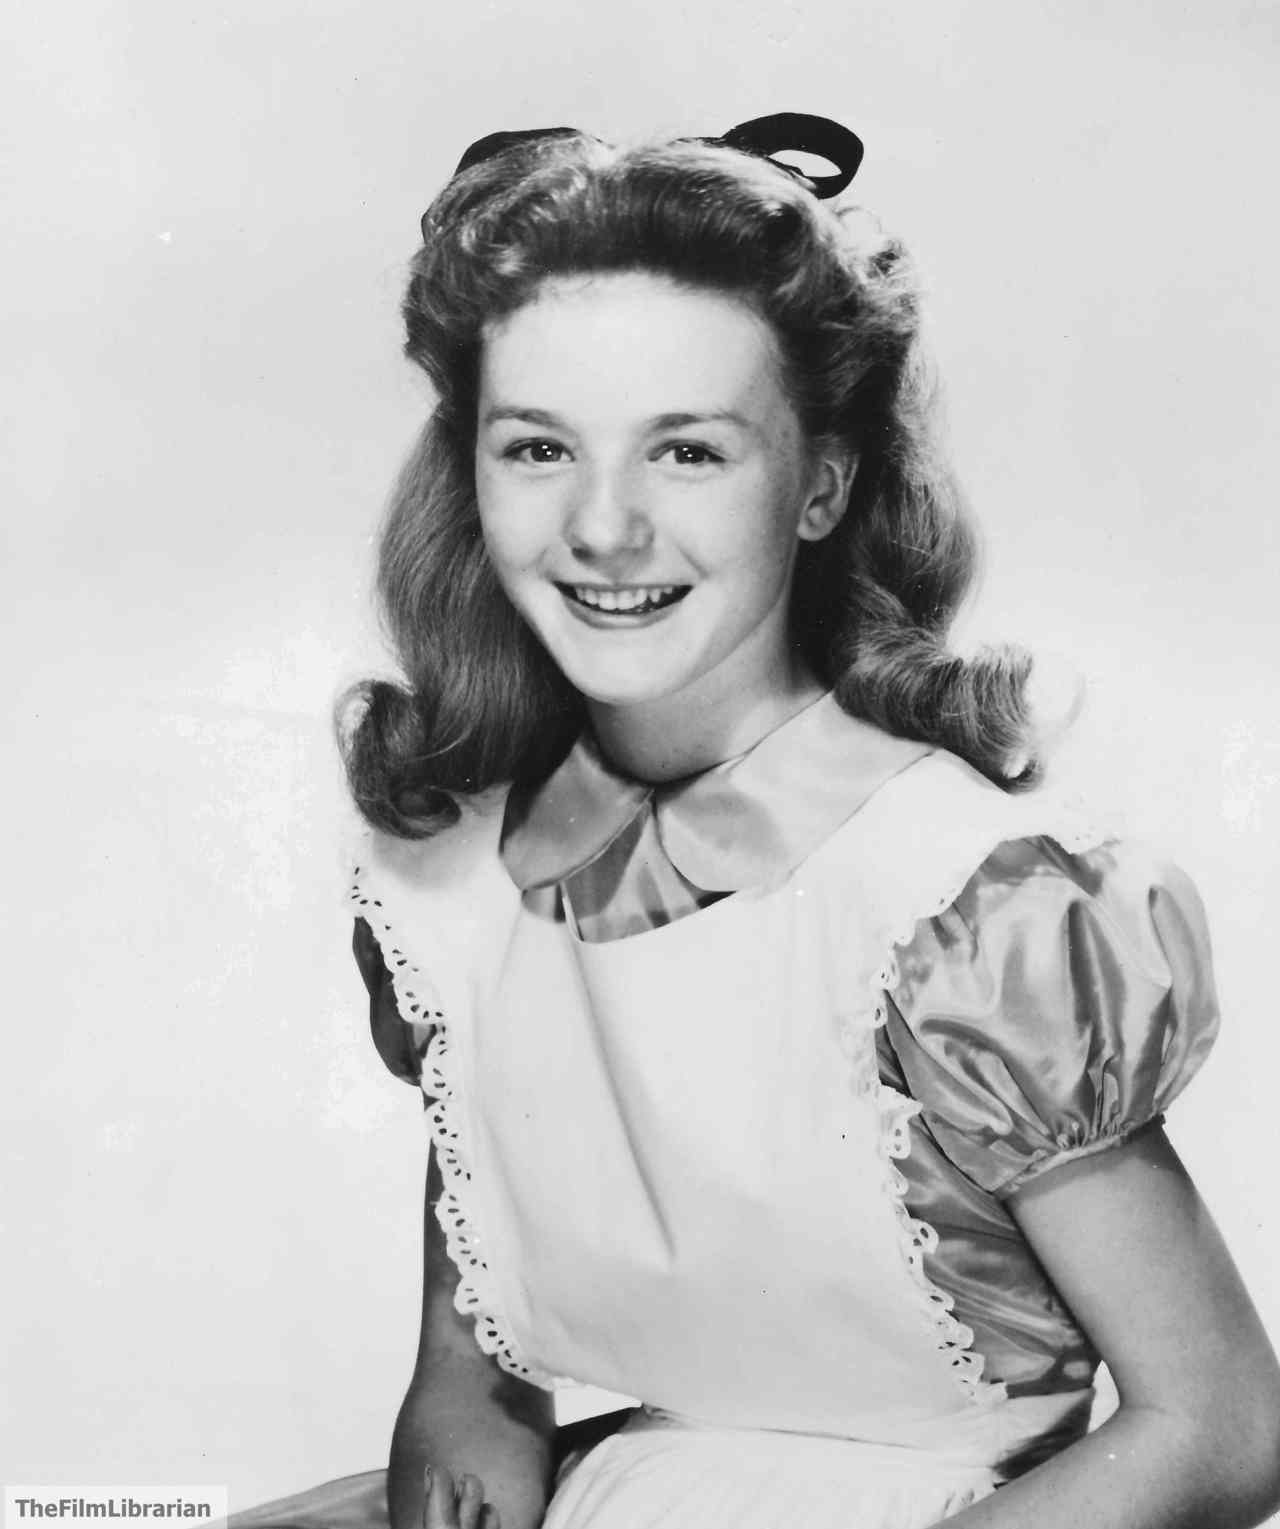 Kathryn Beaumont nudes (82 photo), Tits, Is a cute, Boobs, cleavage 2006